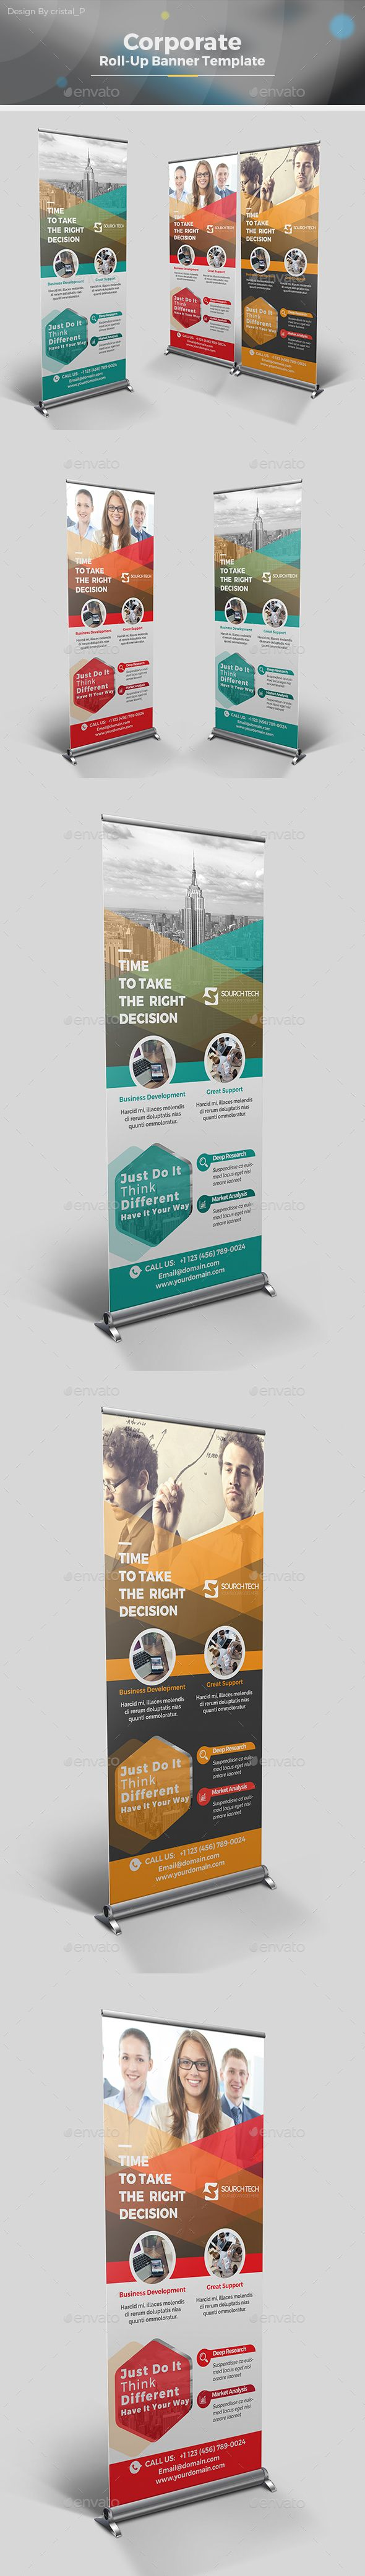 Roll-up Banner by CRISTAL_P Corporate Roll-up Banner Template Designis very easy to use andchange text,color,size,look and everything so please don't worry ab